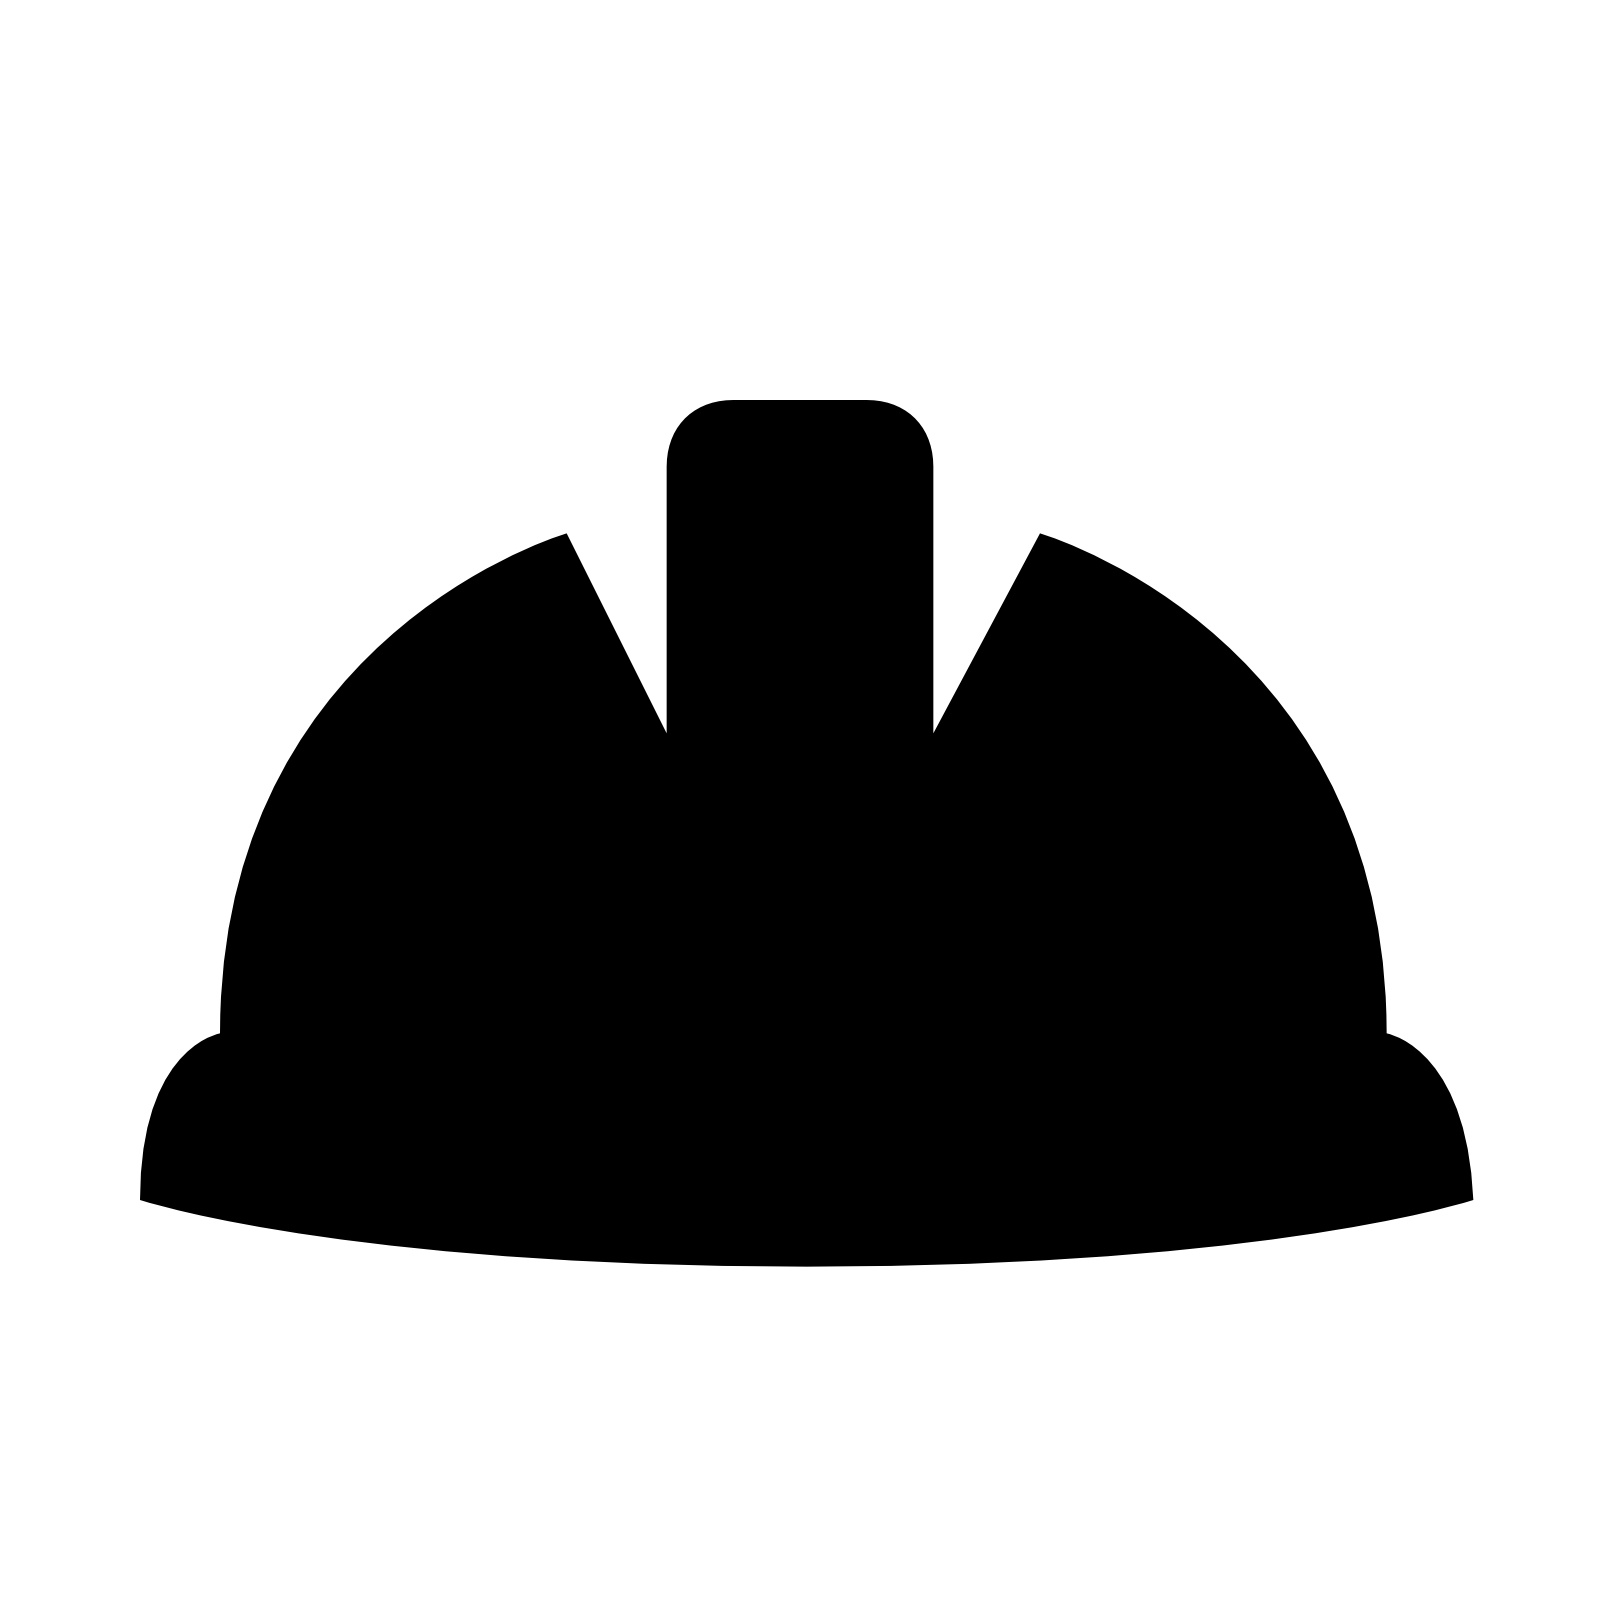 Man clipart hard hat. Silhouette at getdrawings com